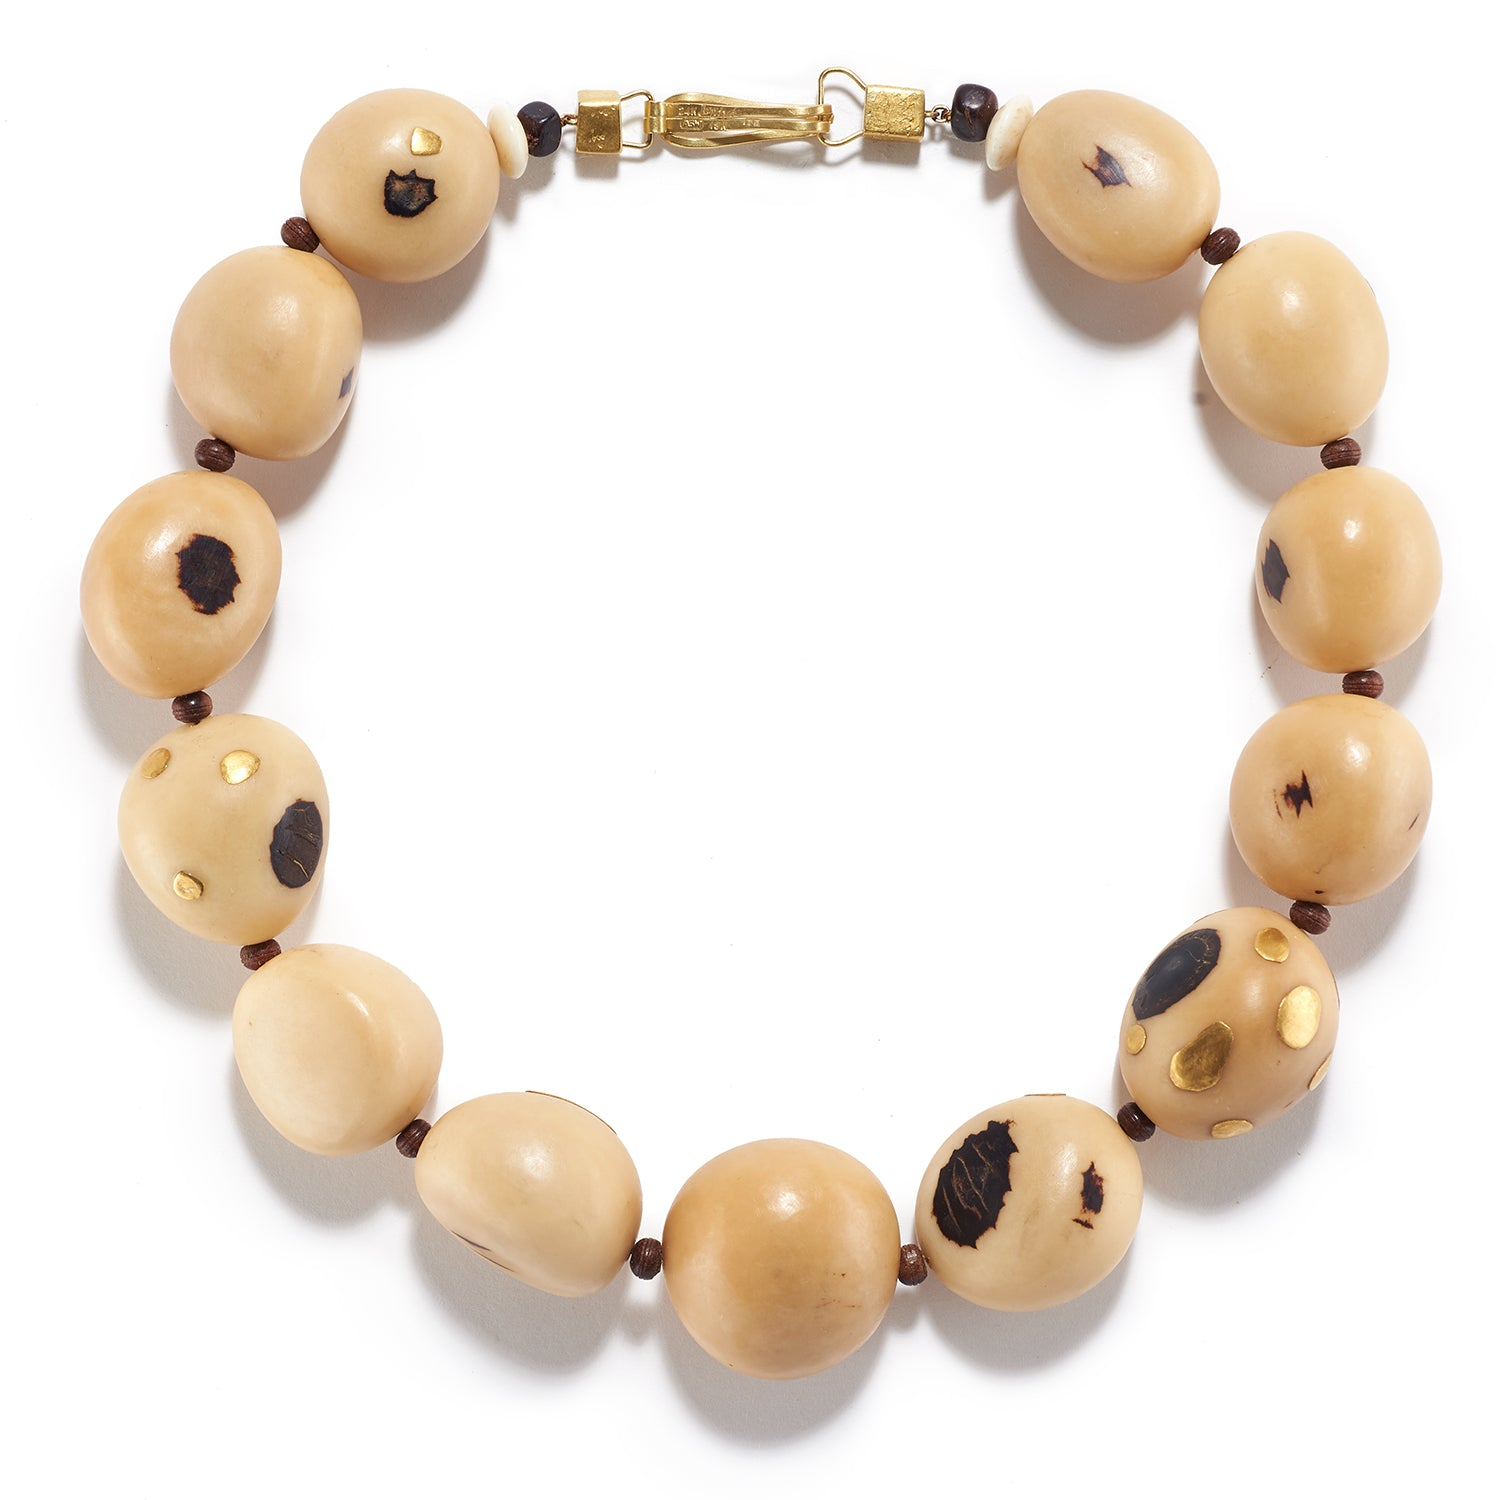 Tagua Nut Necklace